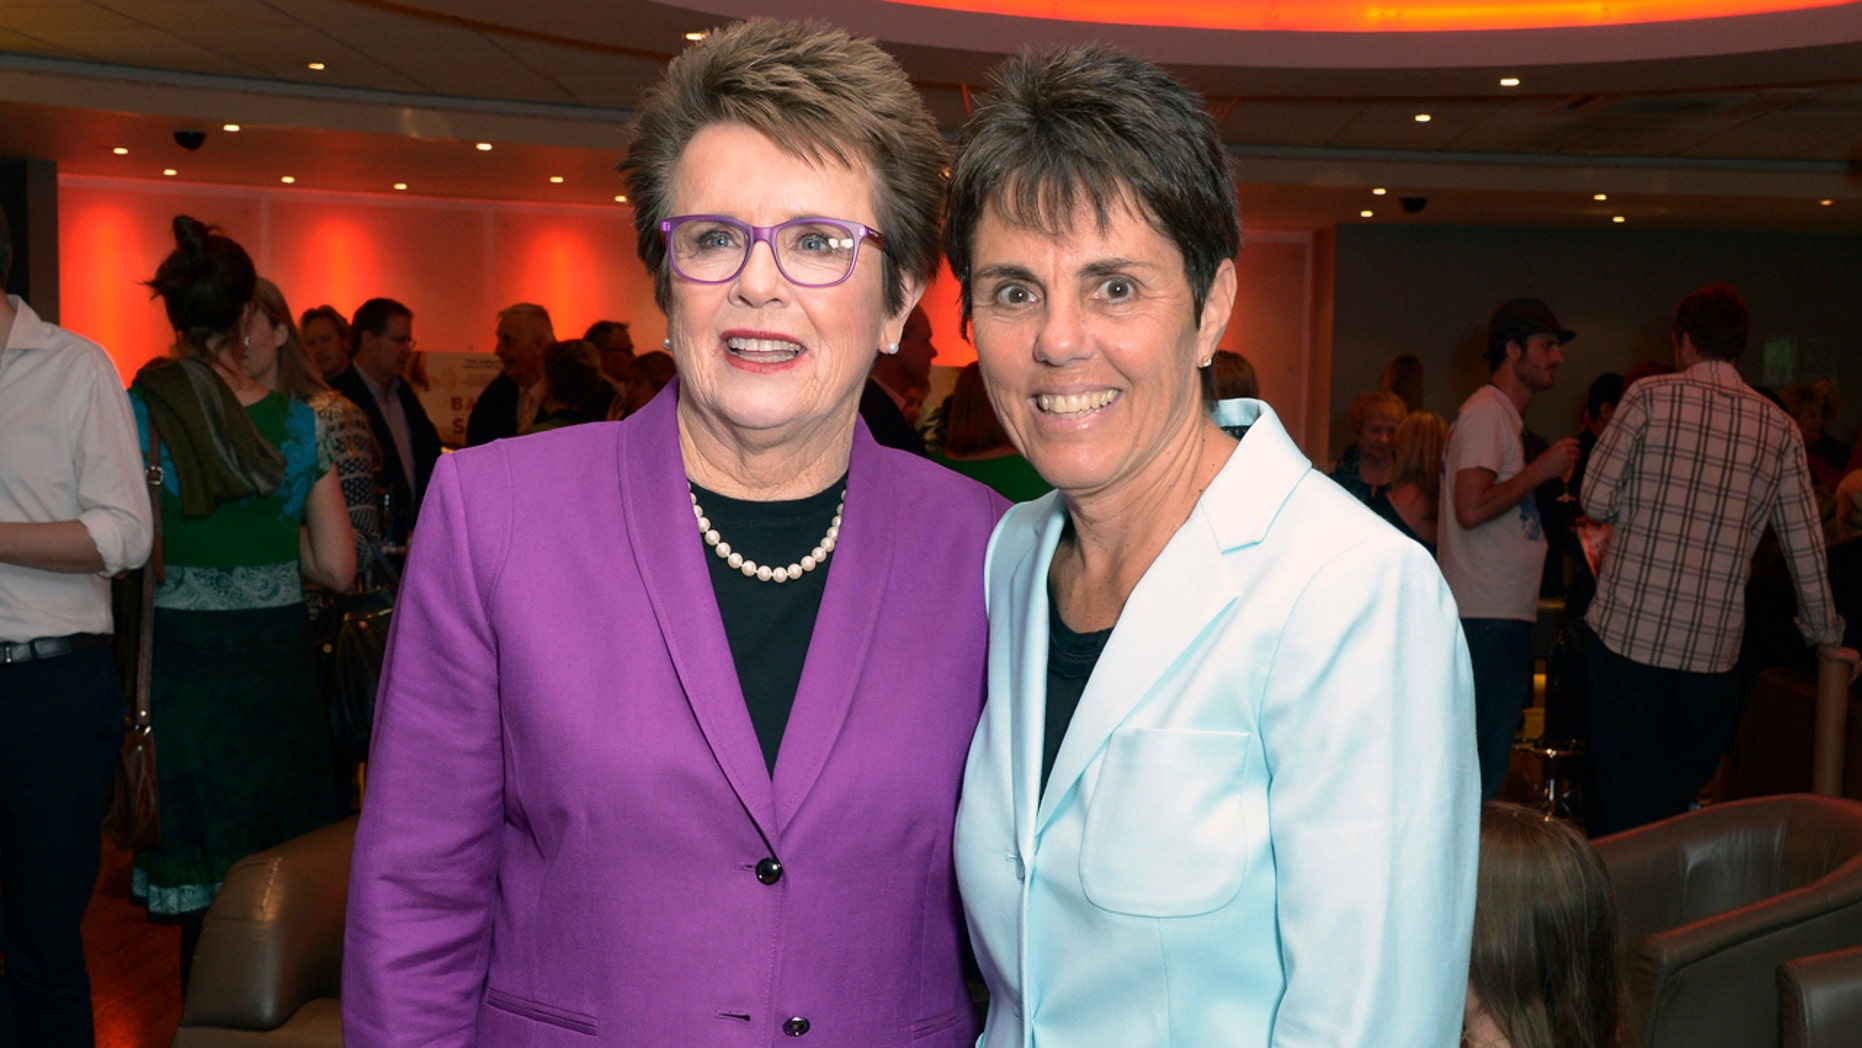 """Former professional tennis champion Billie Jean King, left, and partner Ilana Kloss at the premiere of """"Battle of the Sexes"""" in London, June 26 2013."""